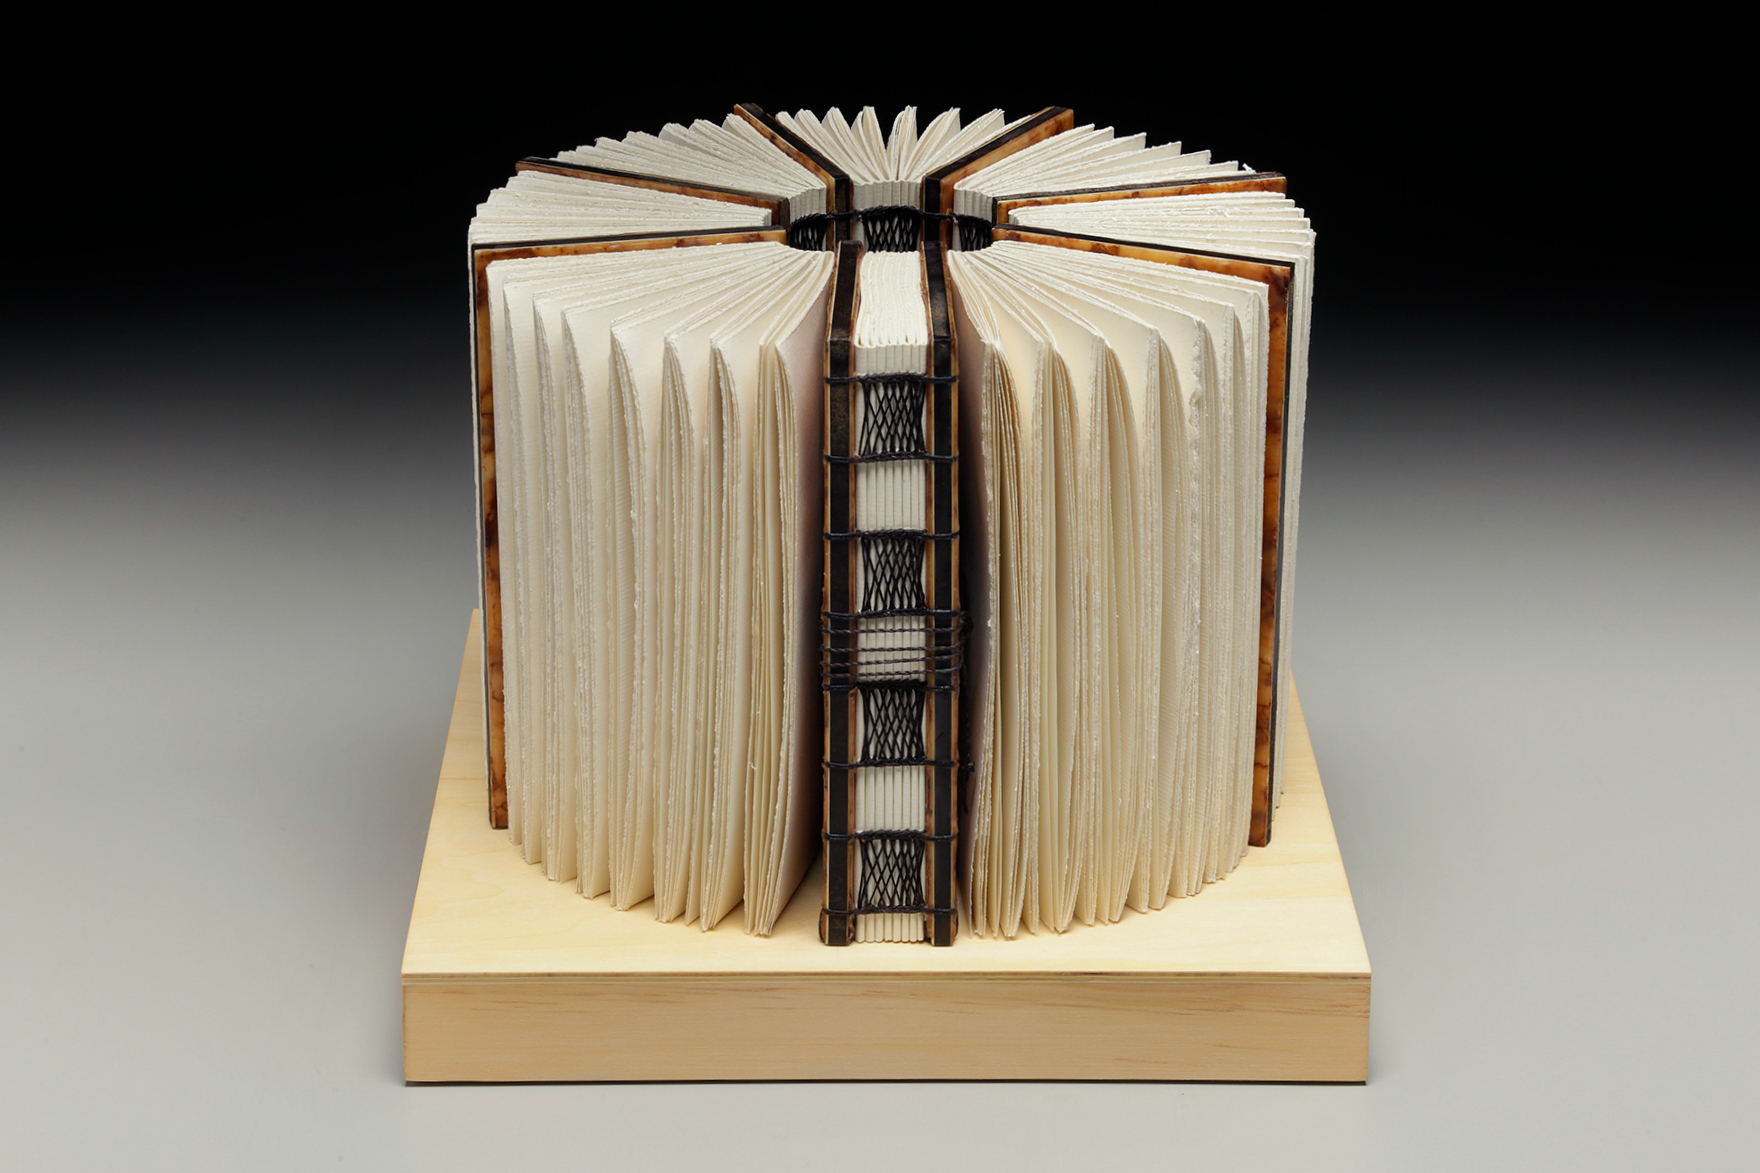 Embracing Within by Erin Keane : sculptural book : encaustic beeswax covers : 12 x 12 x 9.5 inches